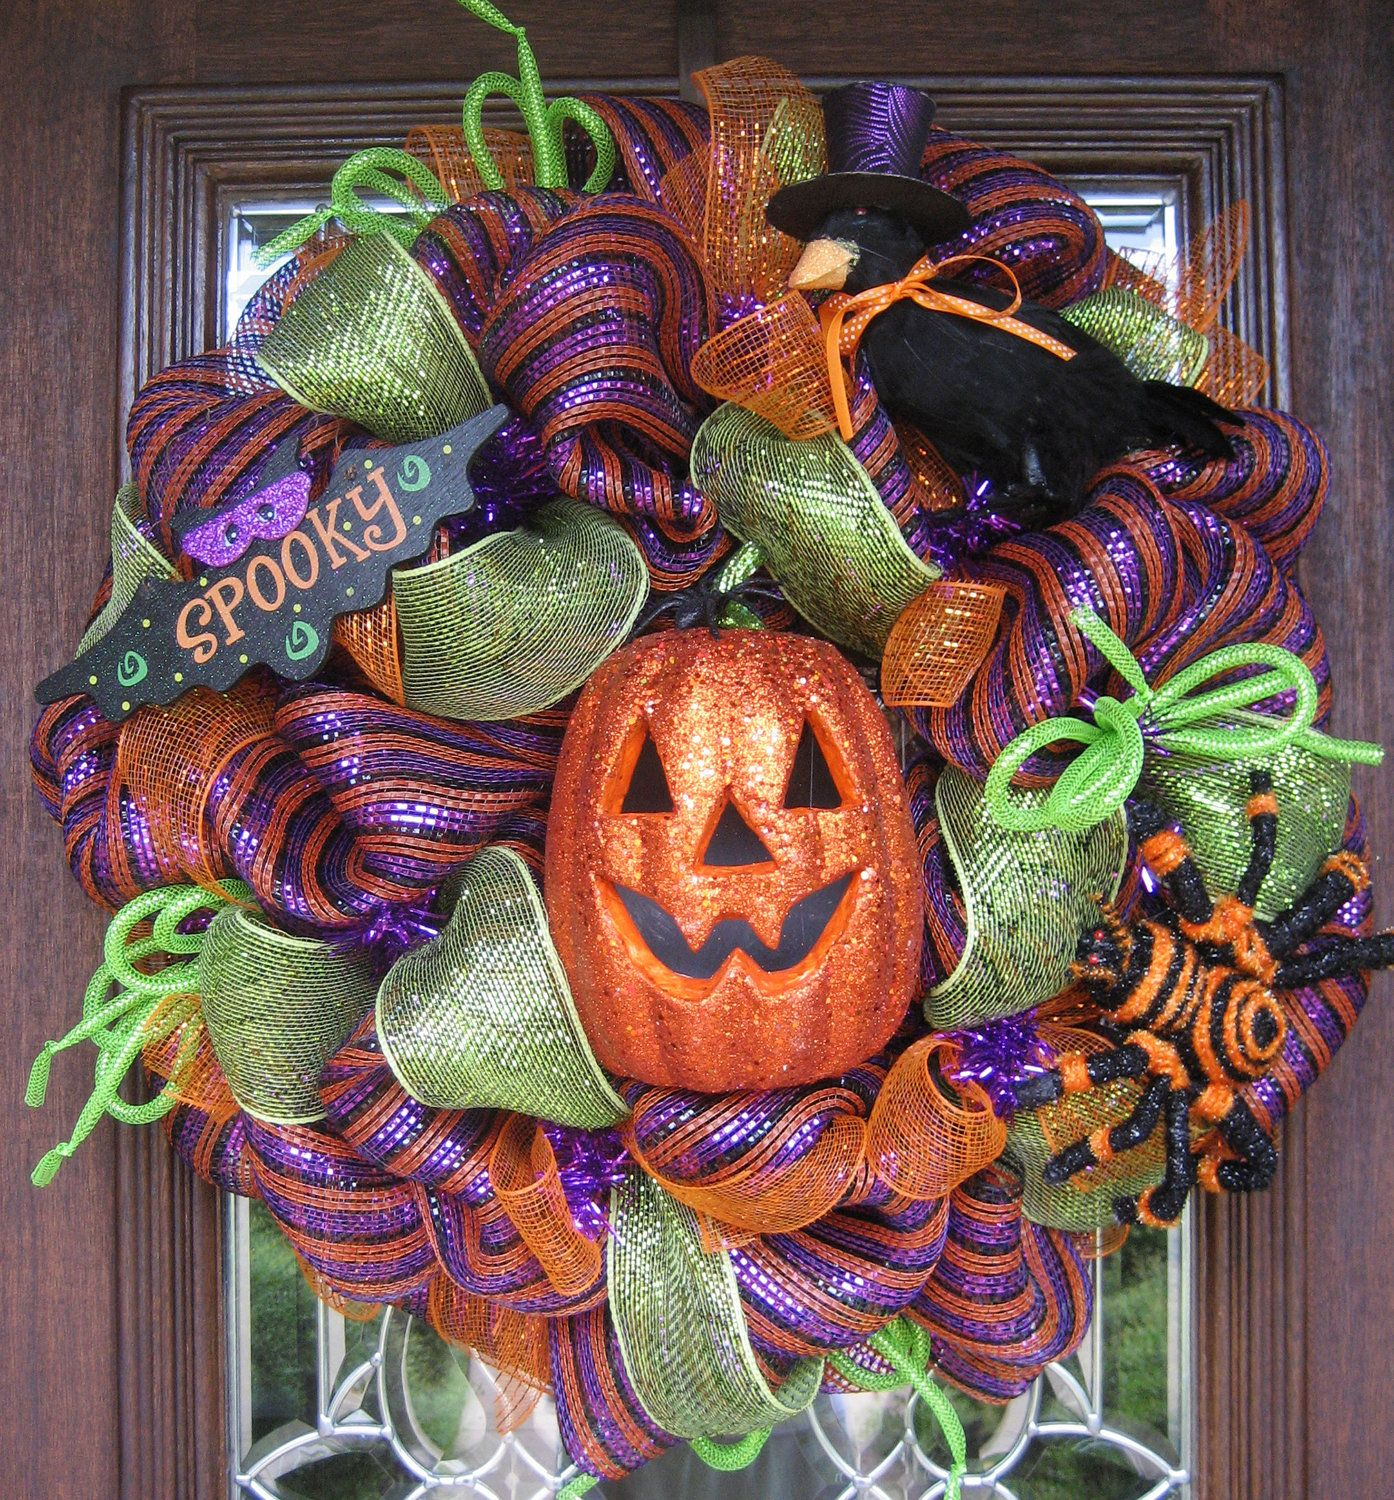 deco mesh halloween spooky wreath with deco mesh ribbon and tubing poly deco mesh creations. Black Bedroom Furniture Sets. Home Design Ideas